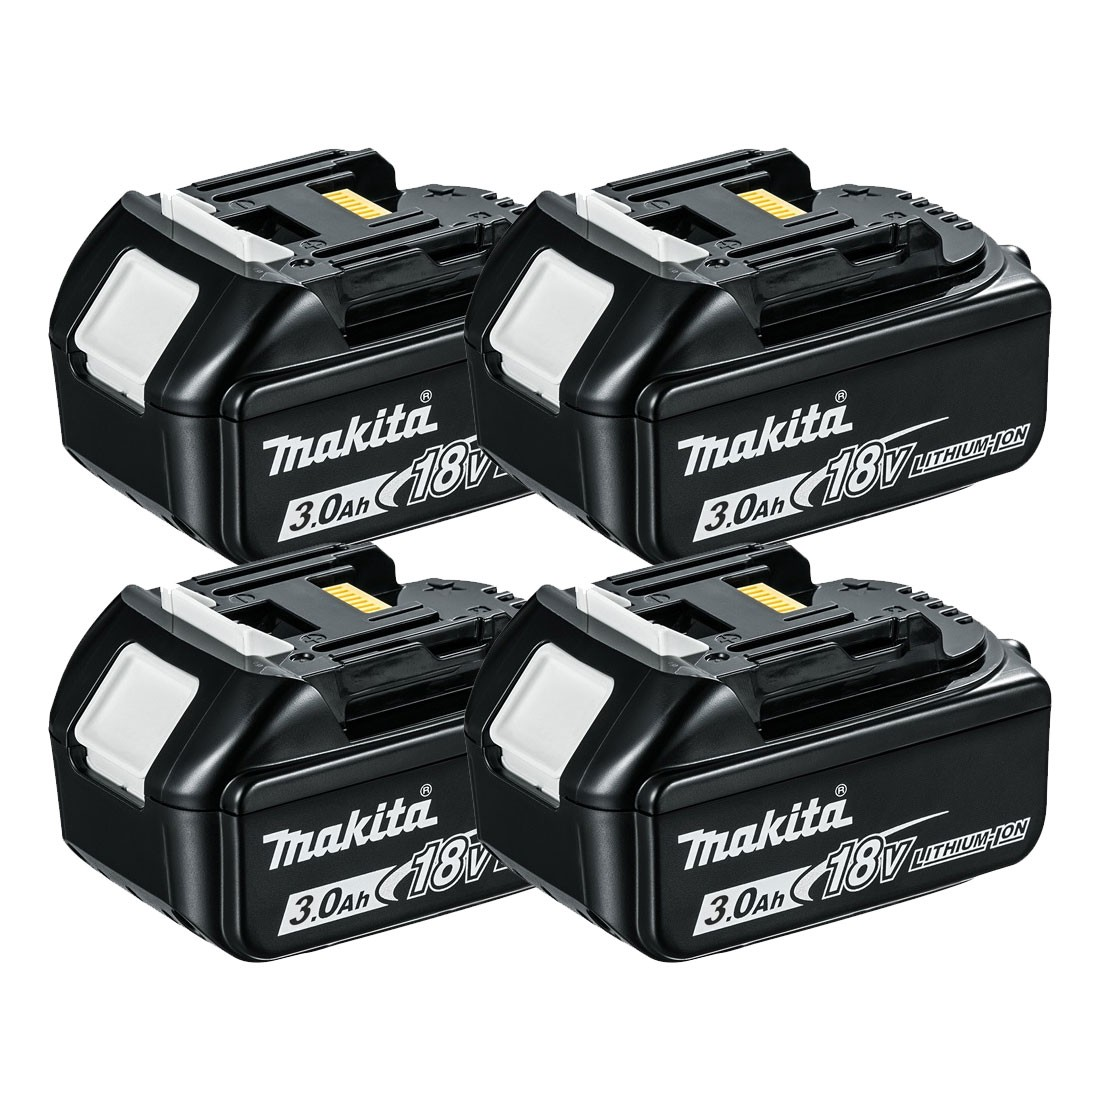 Makita BL1830X4 18v LXT 3.0Ah Li-Ion Battery Quad Pack